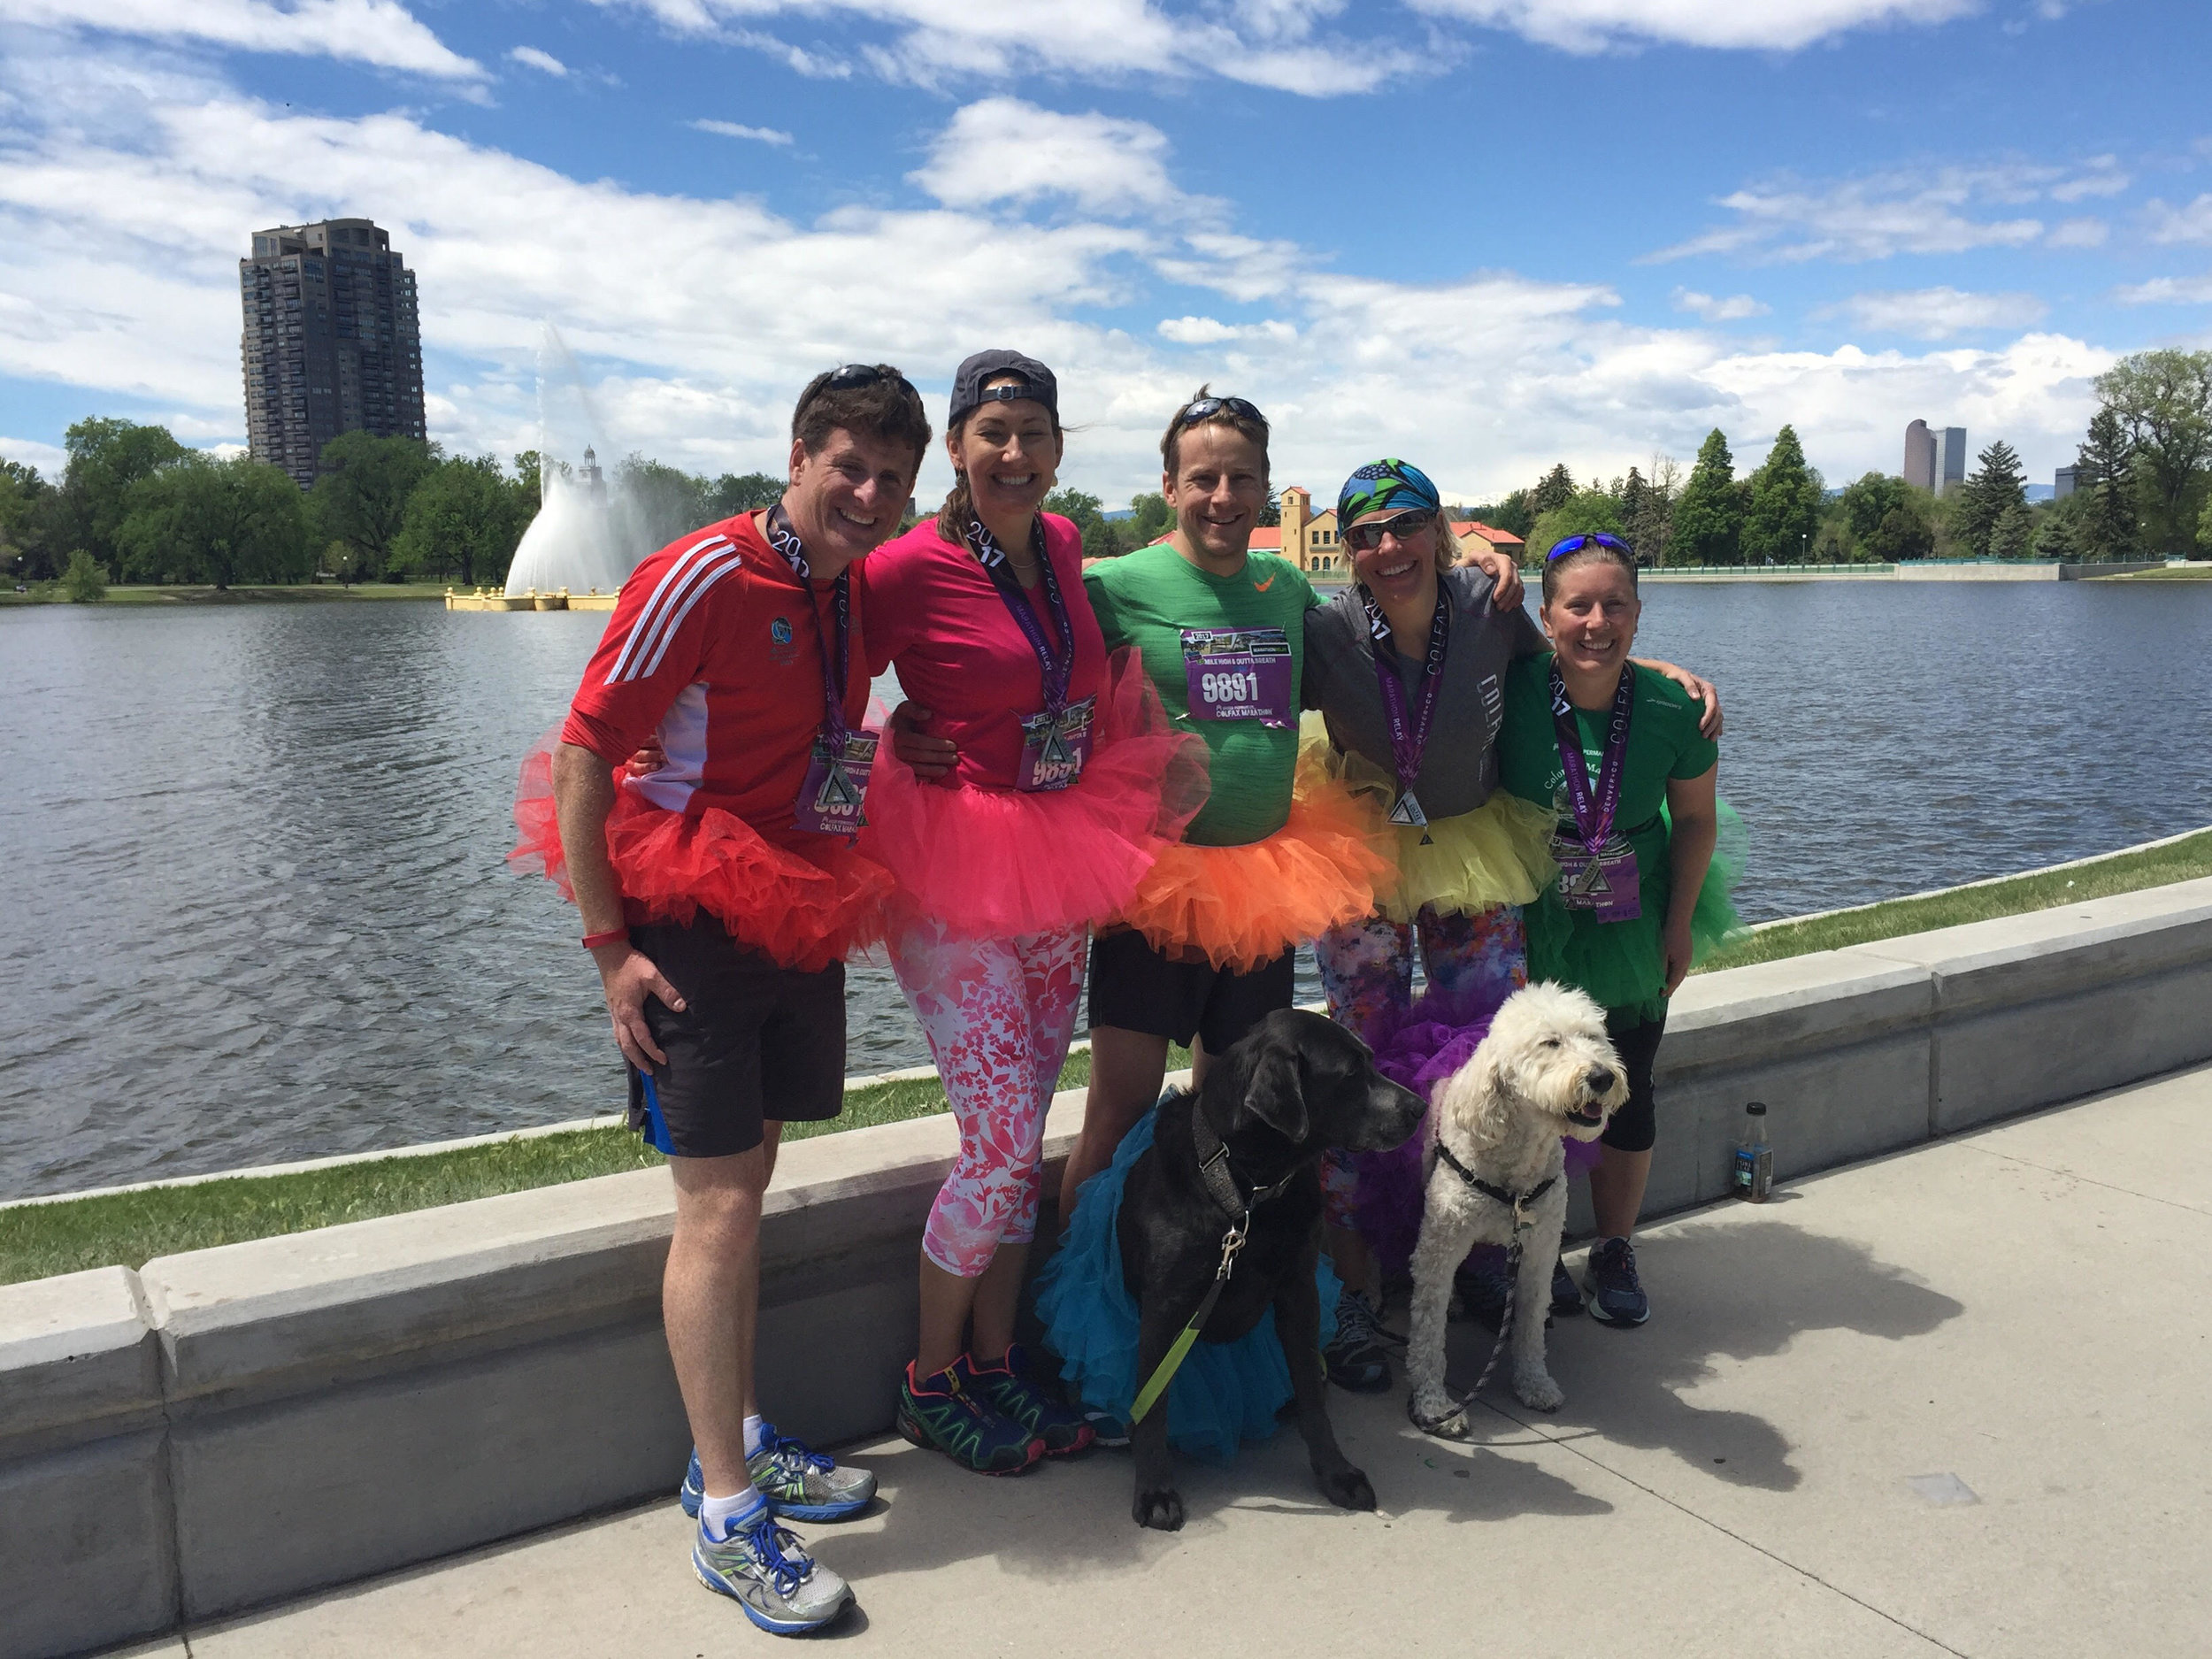 Group shot of the marathon relay team and dogs, all in tutus.